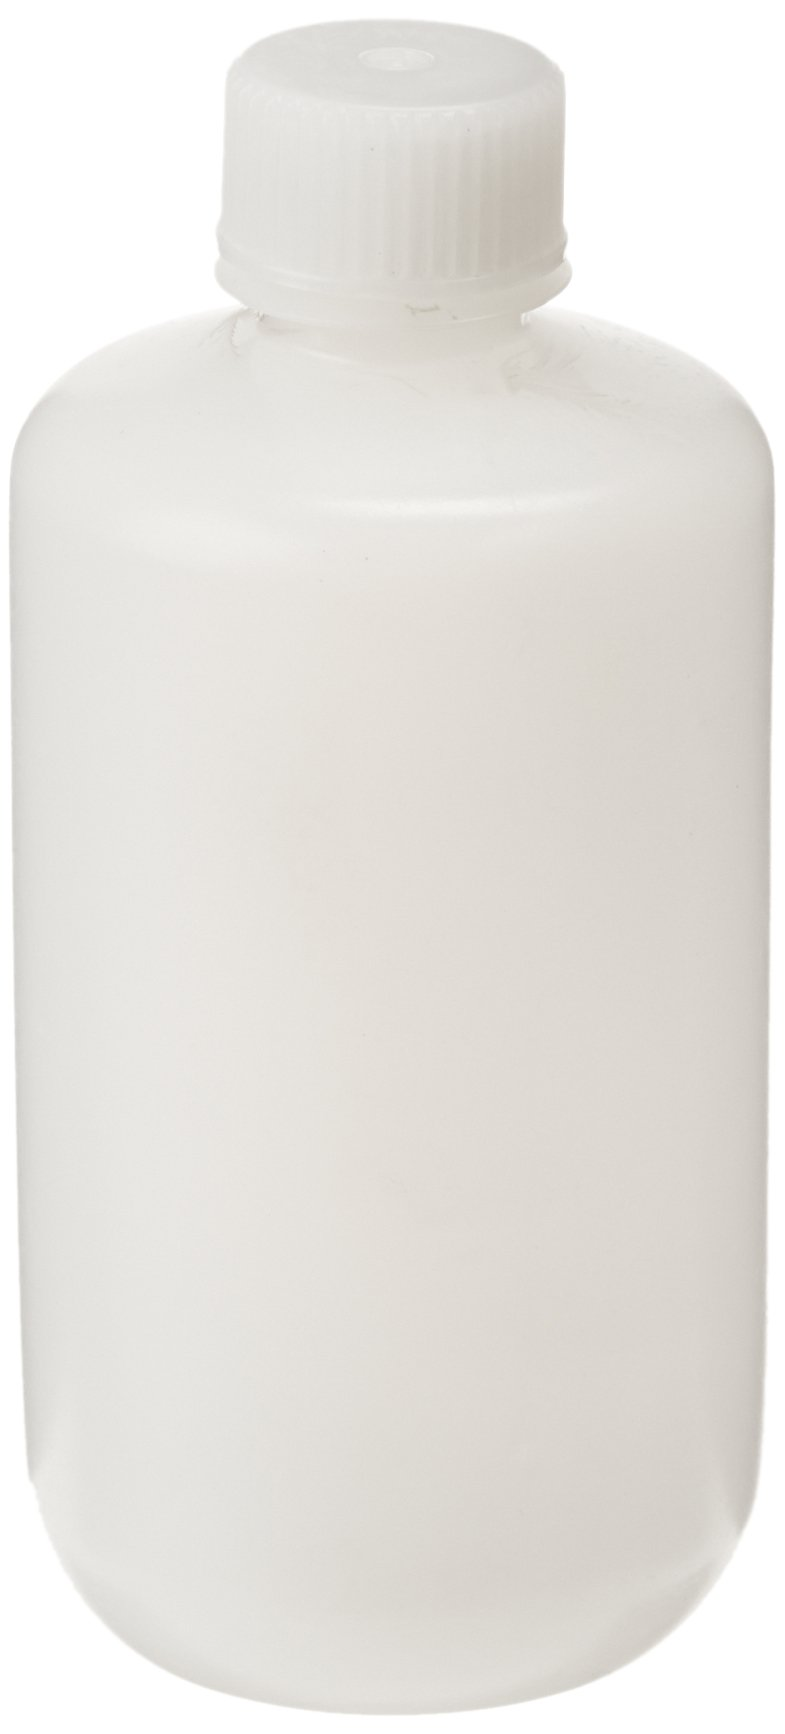 United Scientific 33403 HDPE Narrow Mouth Reagent Bottles, 250ml Capacity (Pack of 12)